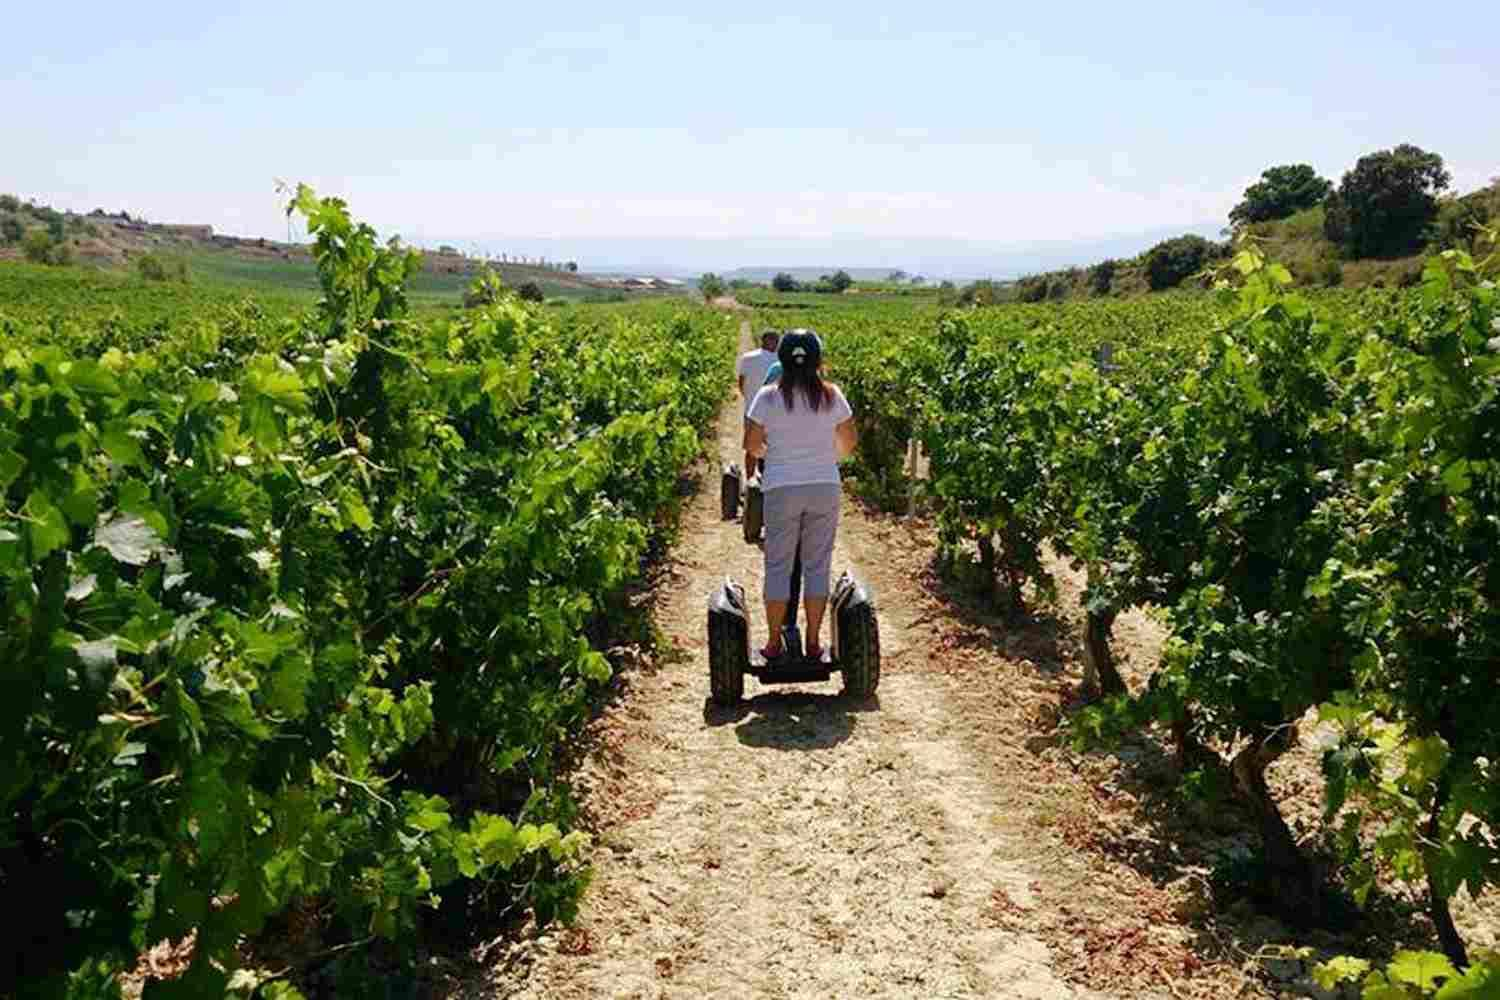 Segway winery tour in Rioja